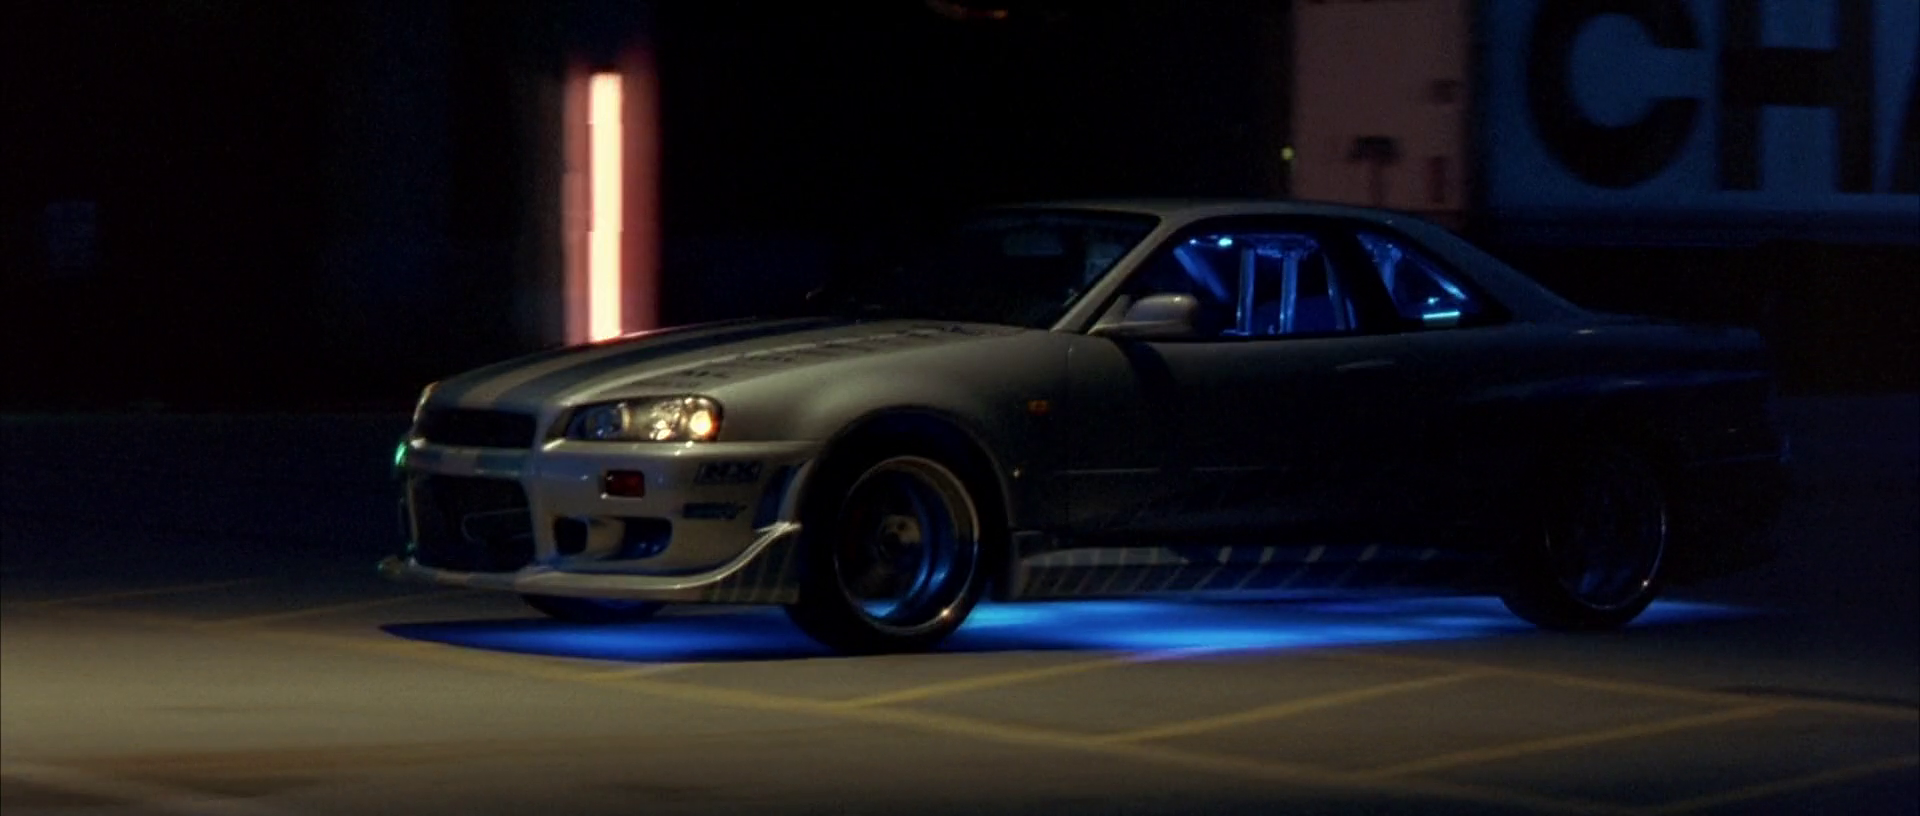 1999 Nissan Skyline   Side View.png